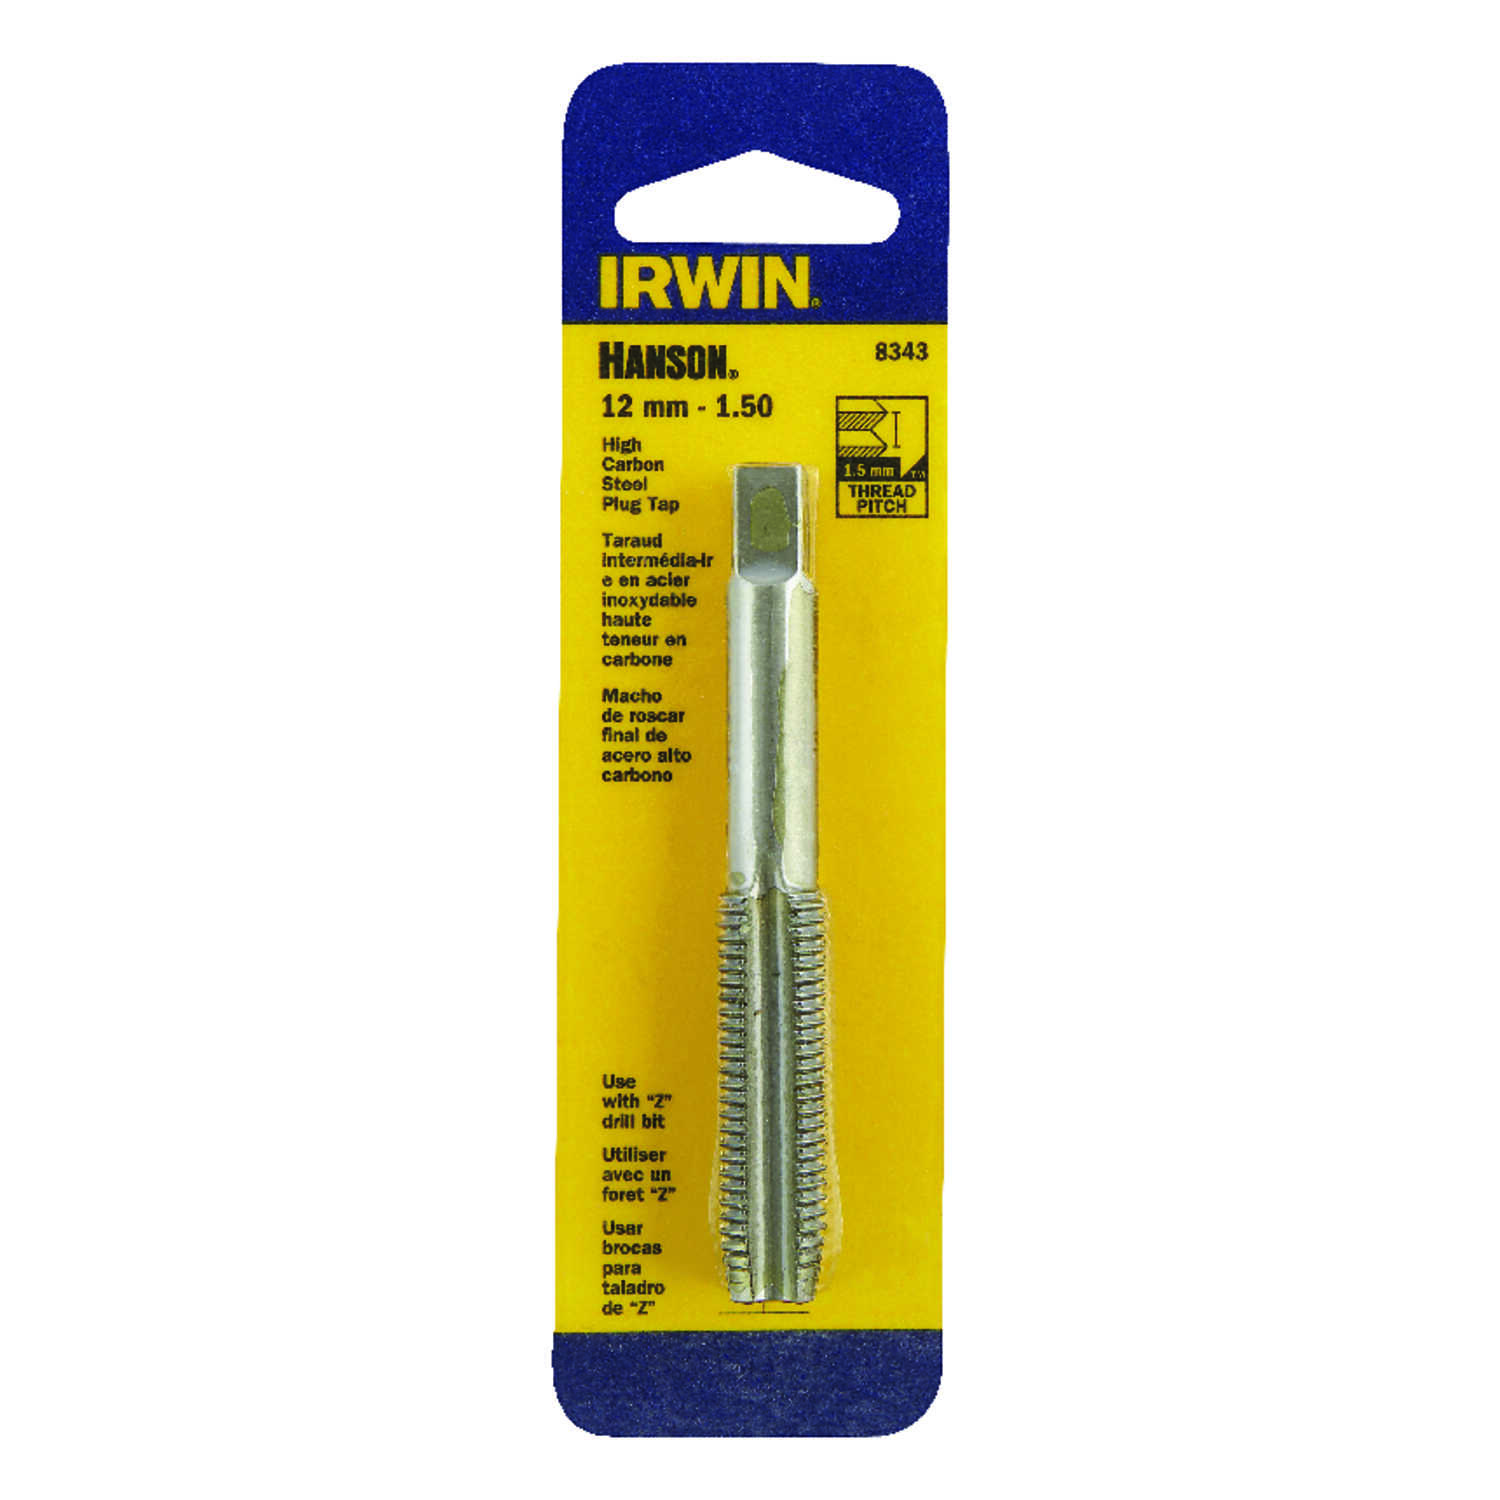 Irwin  Hanson  High Carbon Steel  Metric  Plug Tap  12mm-1.50  1 pc.